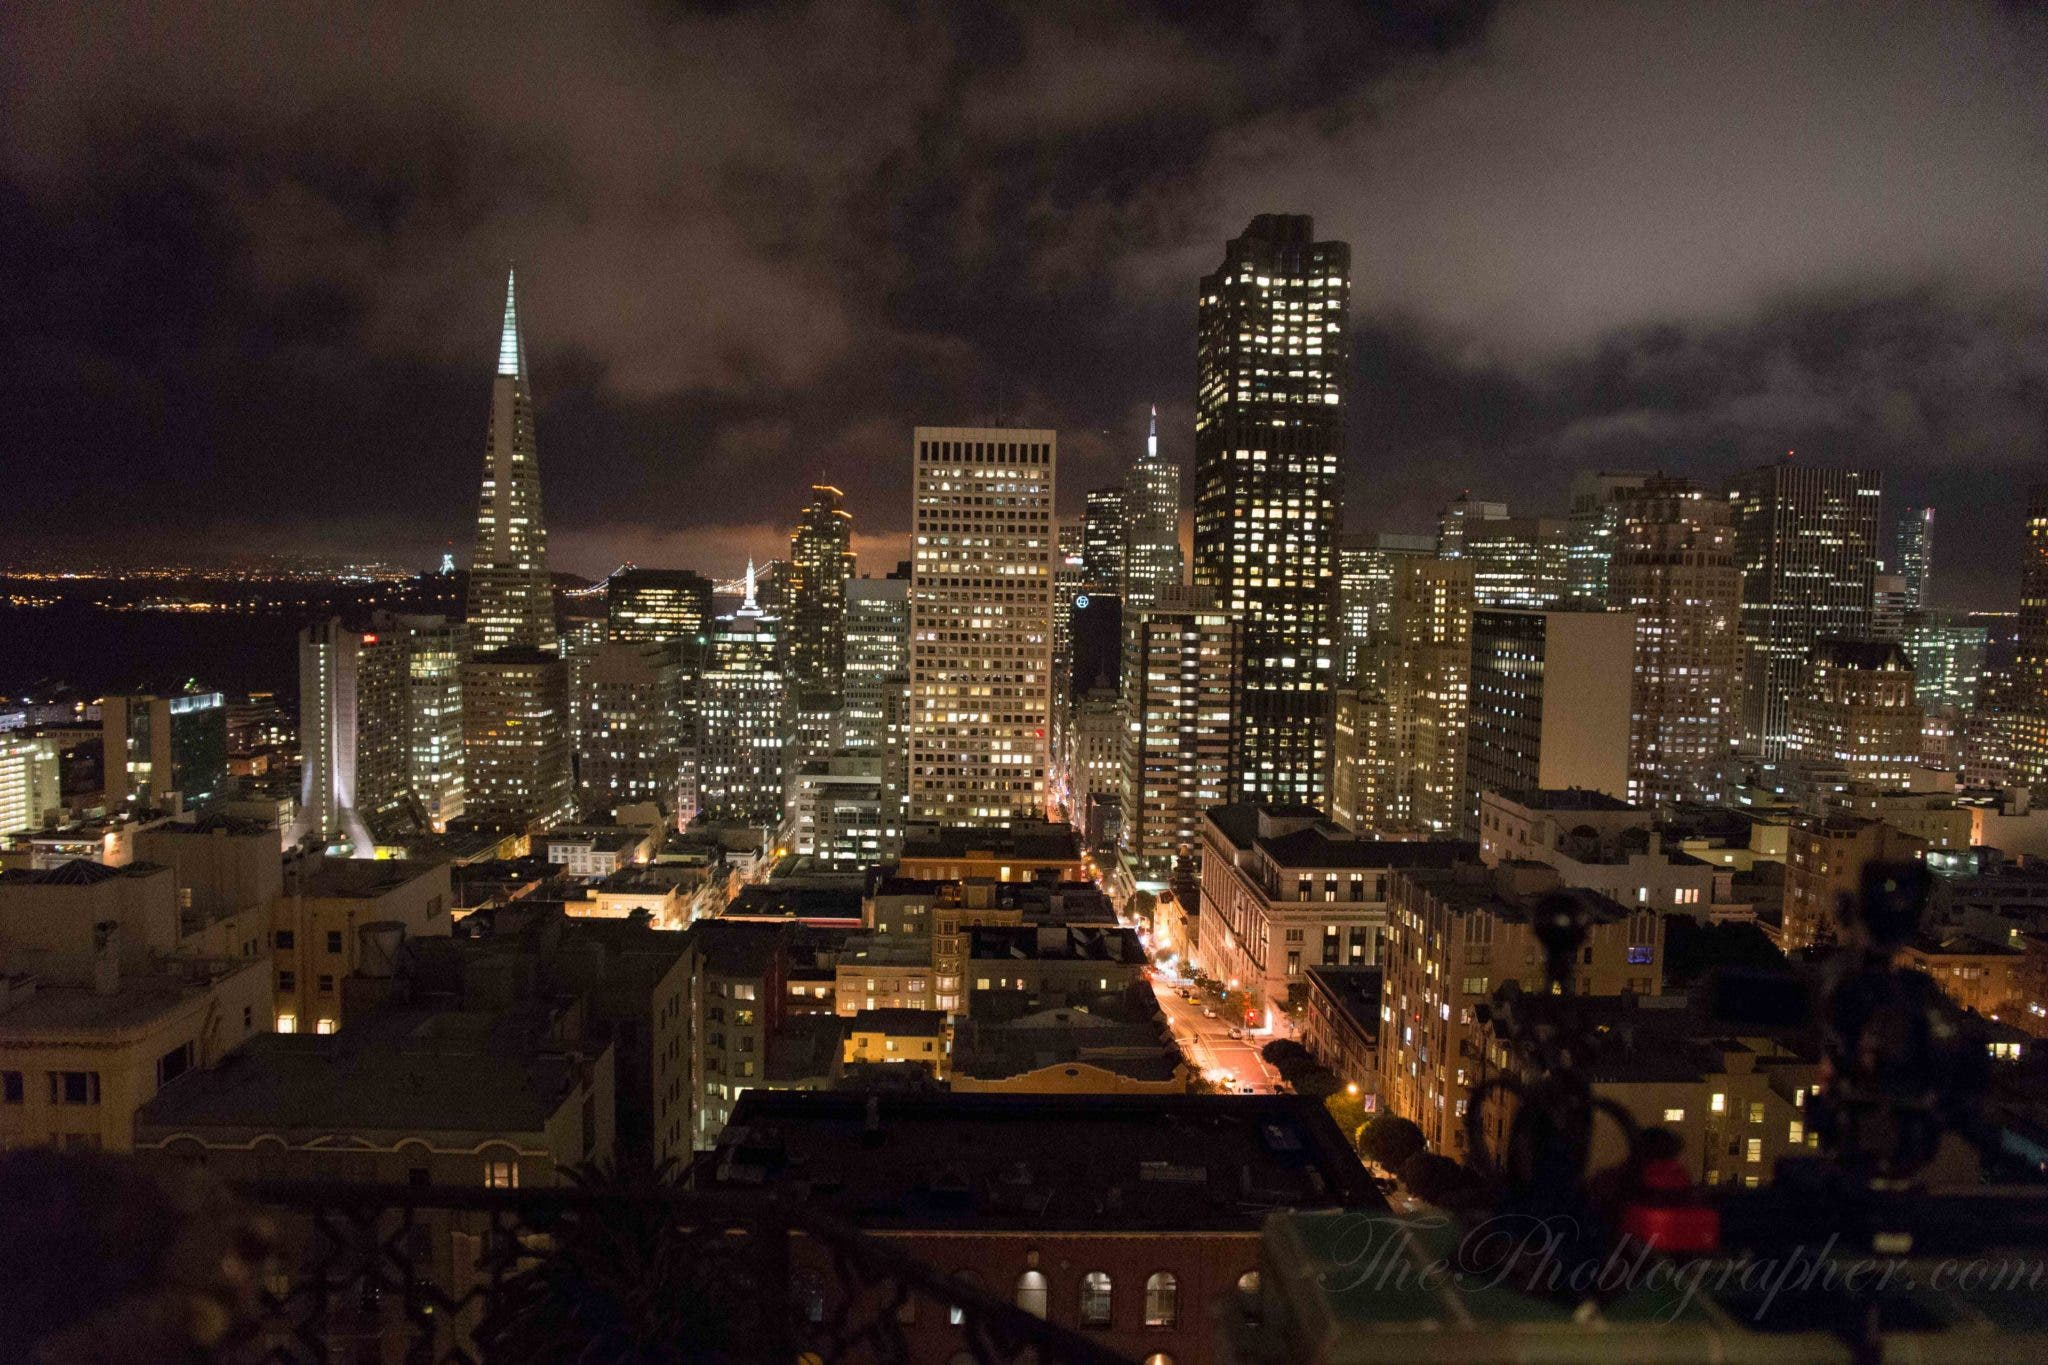 High ISO Cityscape Image Sample from the Sony A99 (and a Long Exposure!)